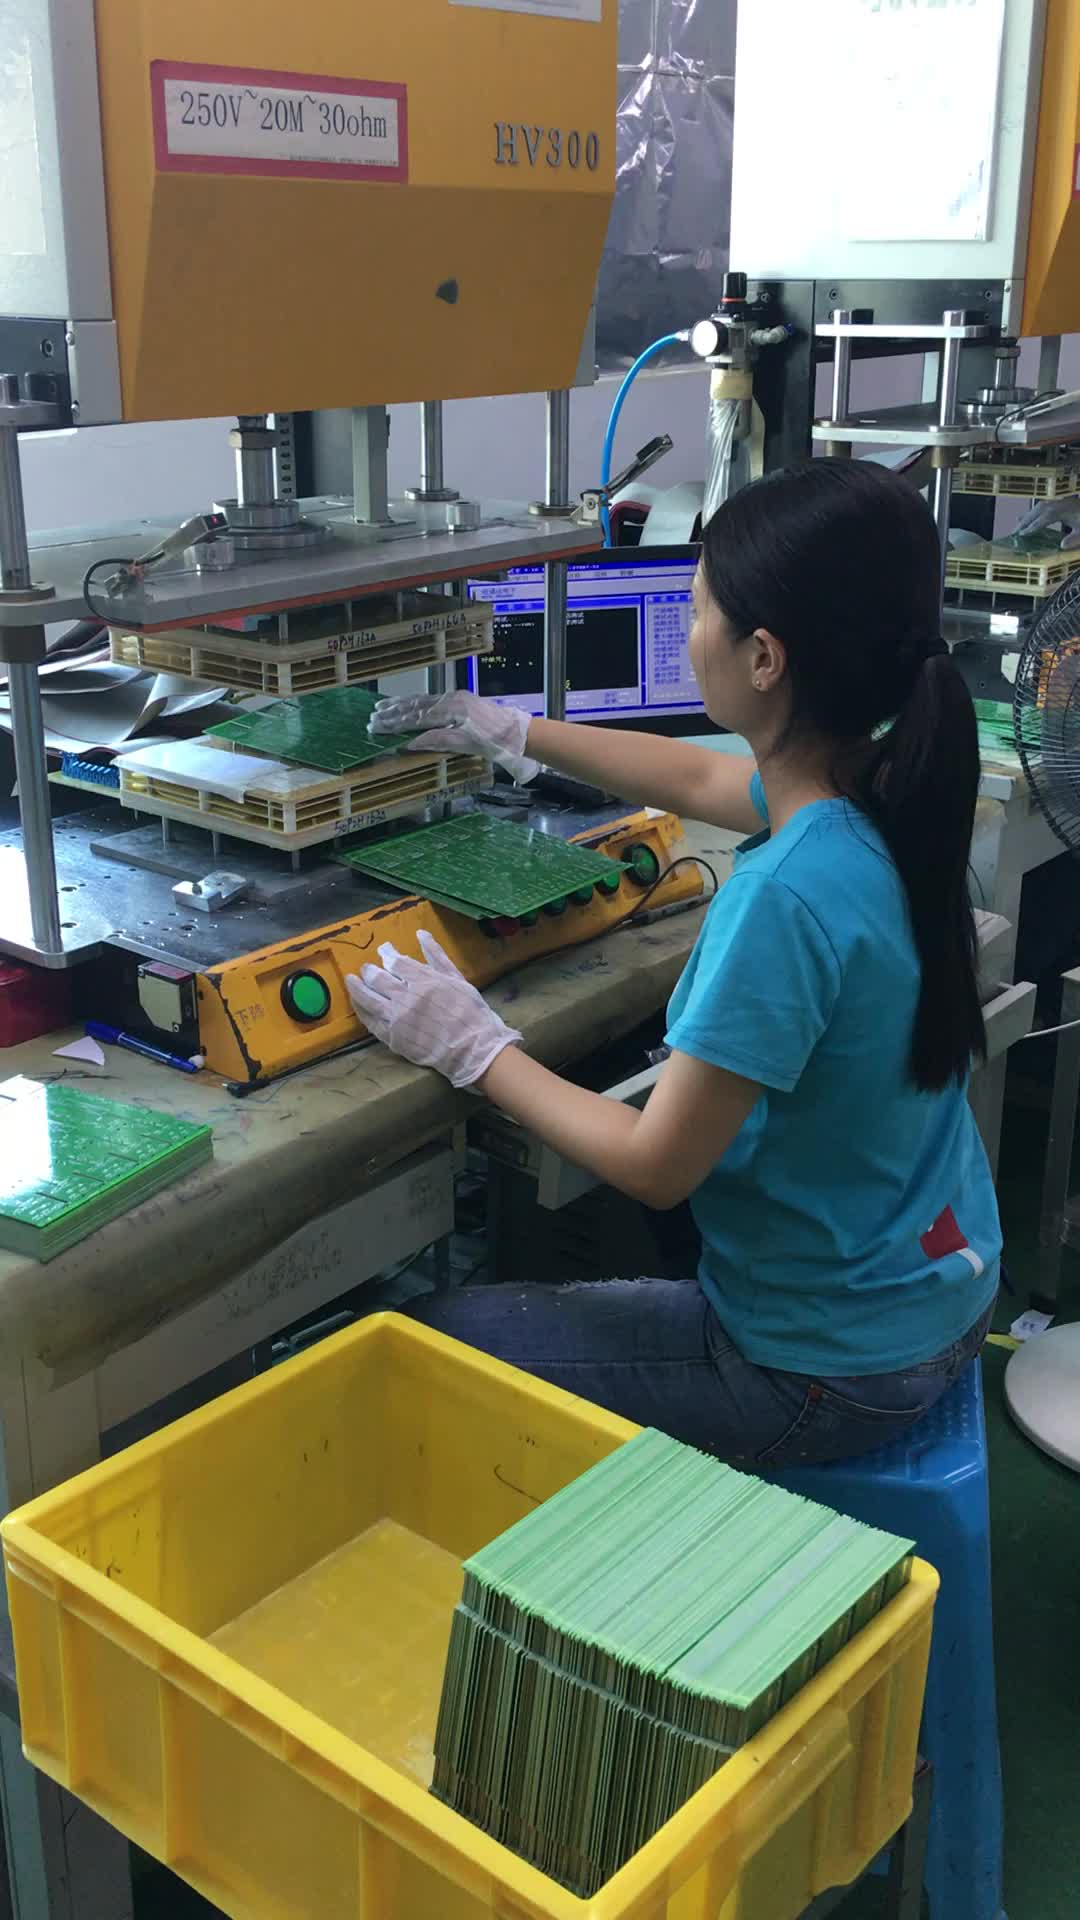 Assembly Of Single And Double Sided Thruhole Printed Circuit Boards